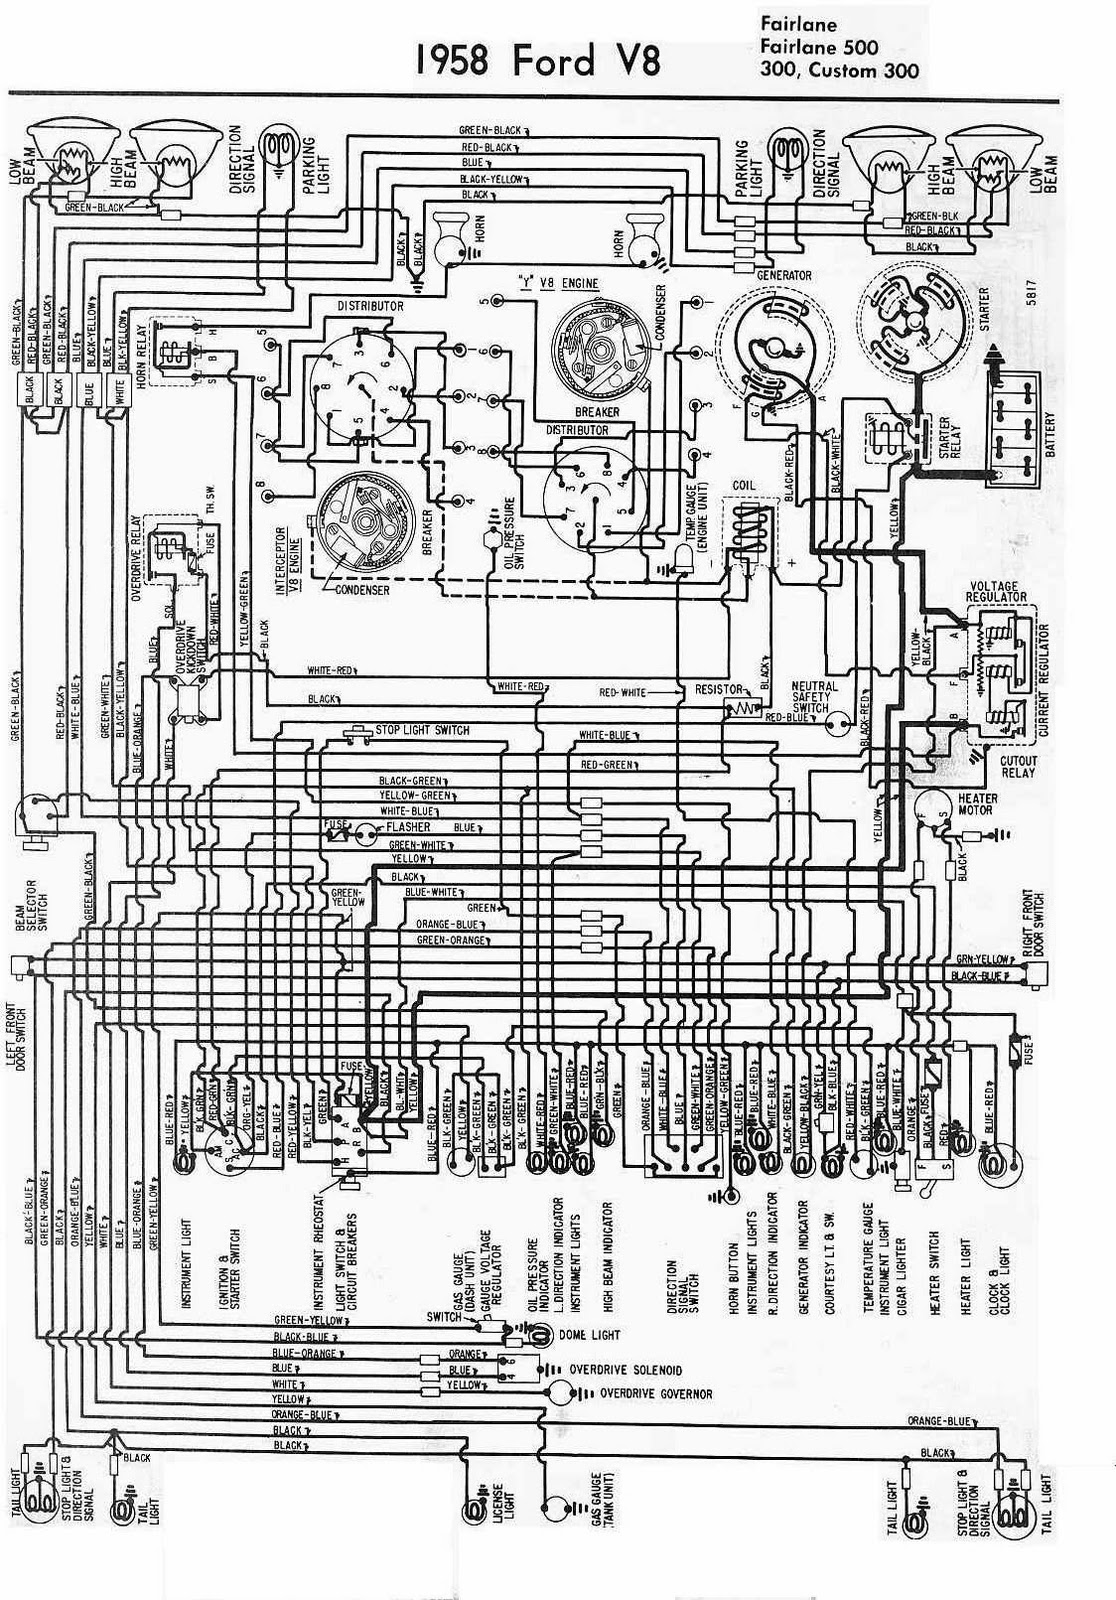 1958 ford wiring diagram 1958 chevrolet wiring diagram